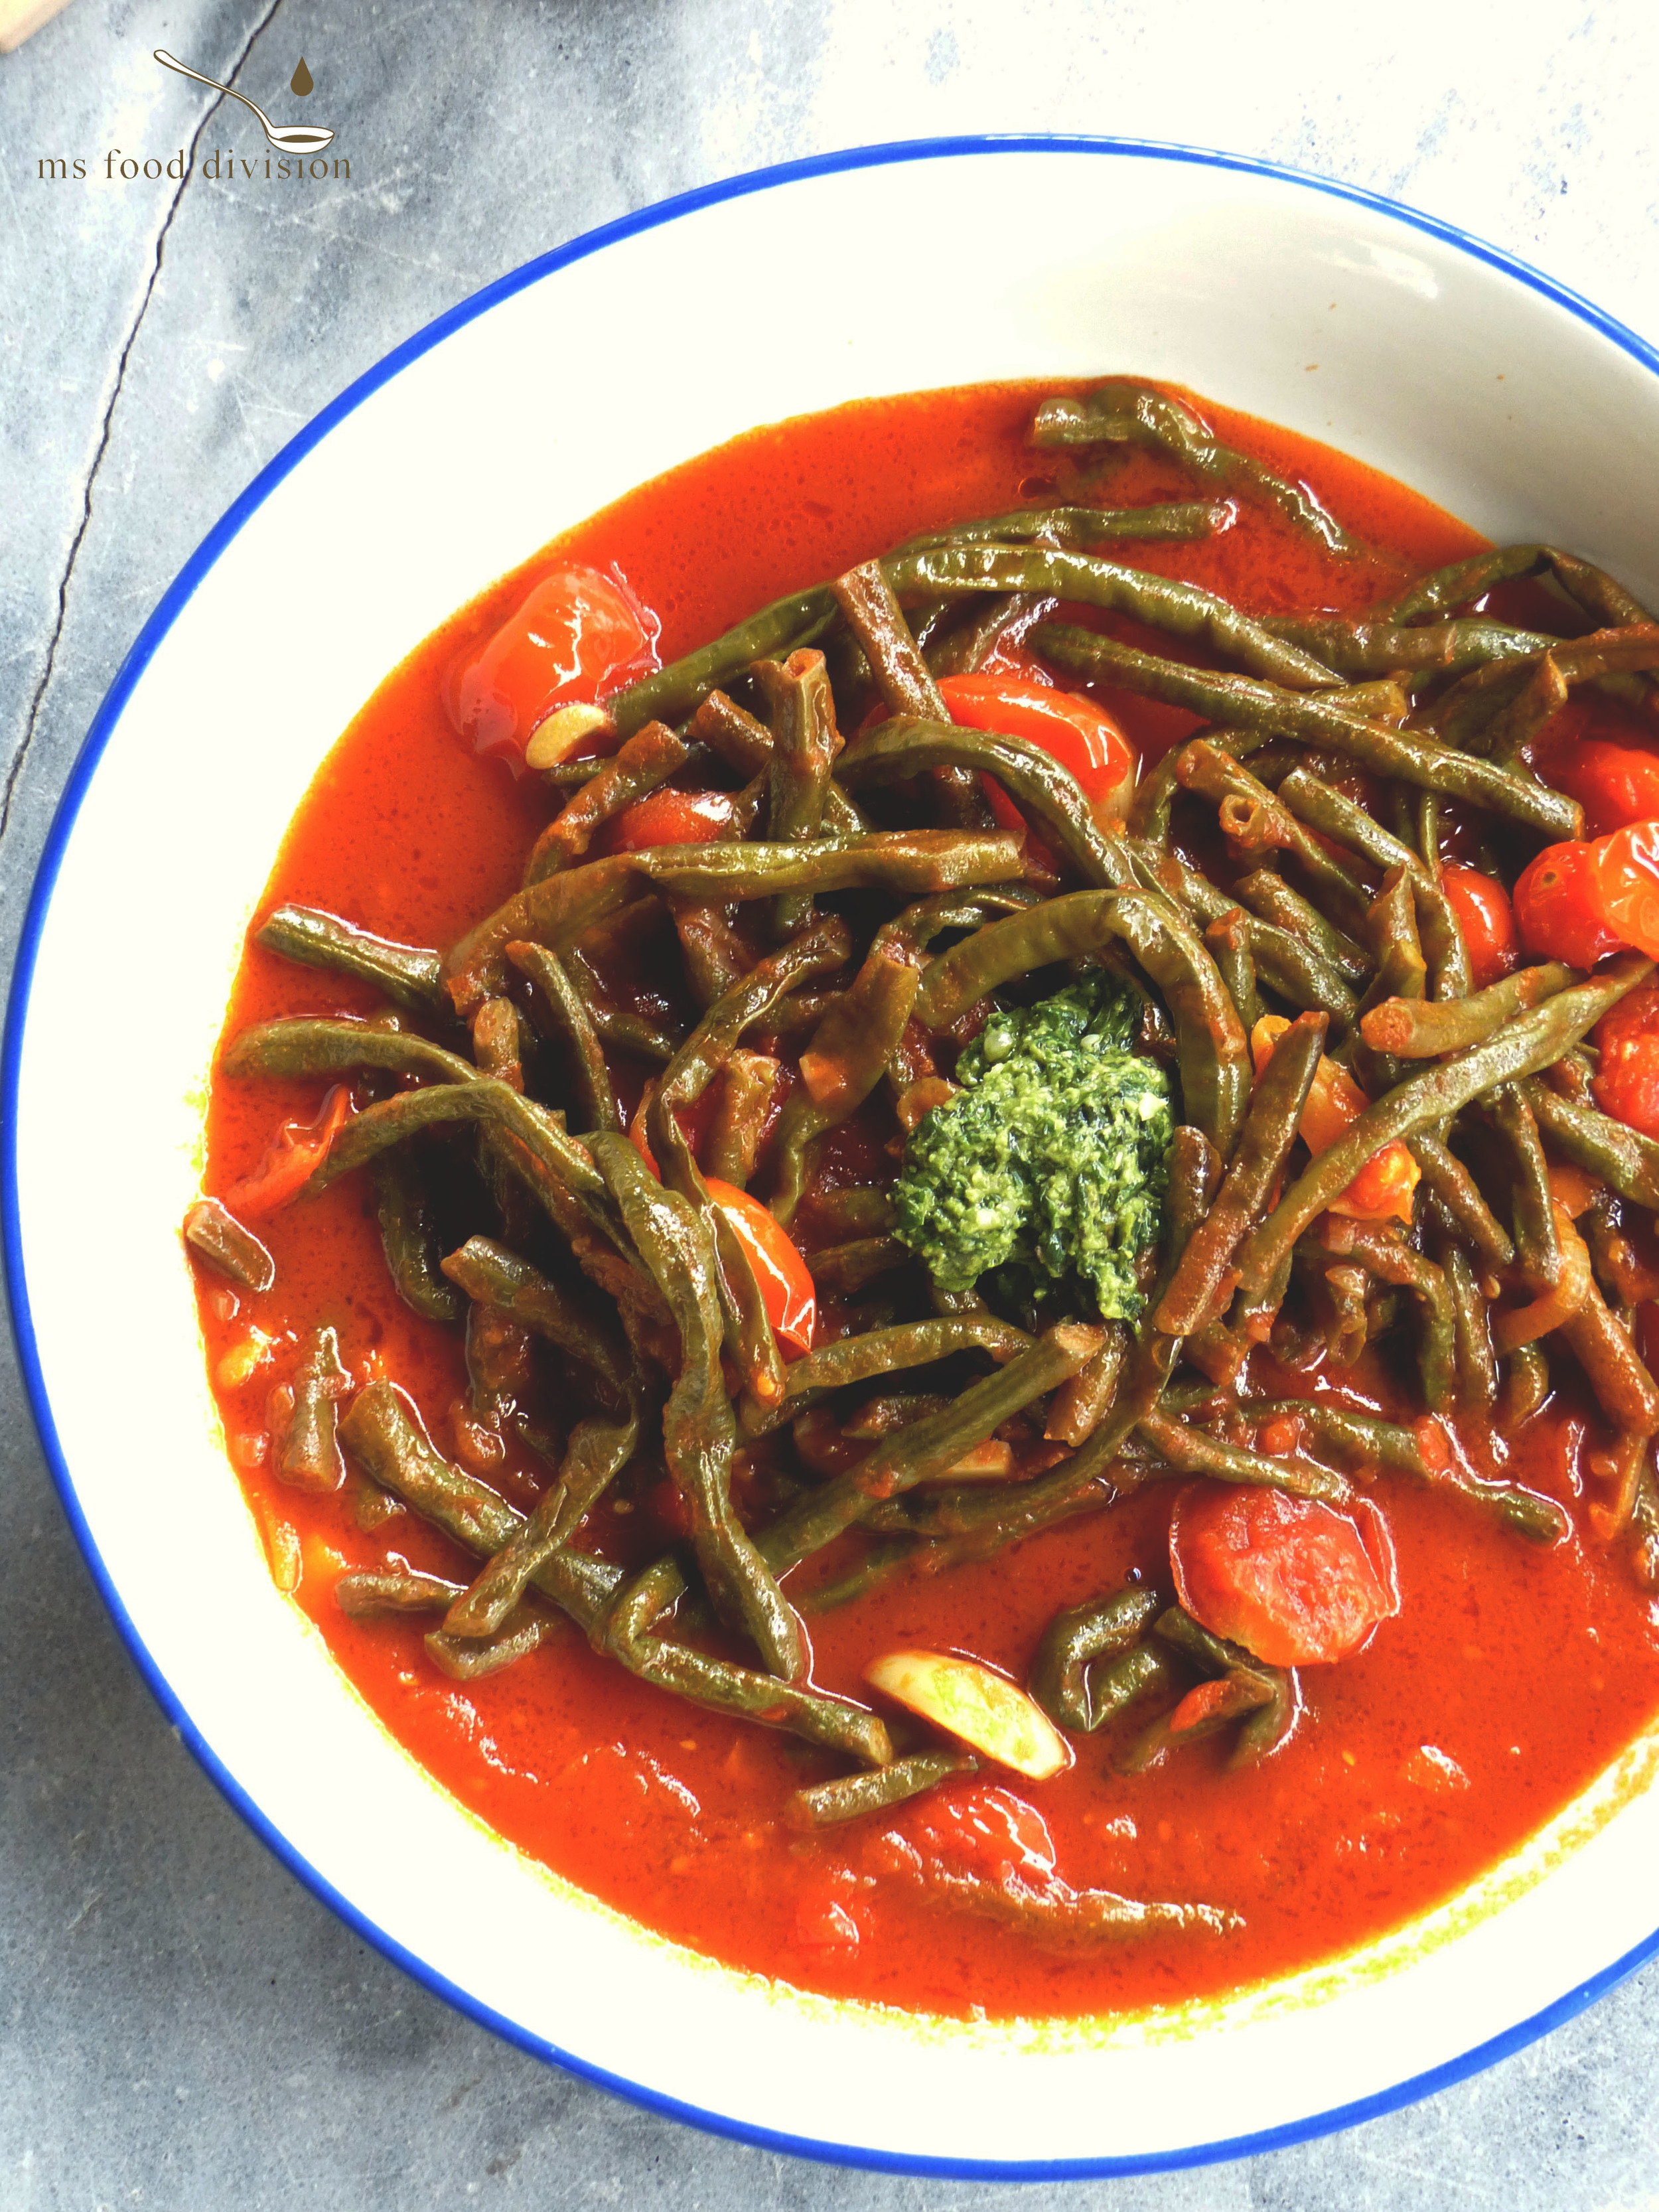 Servings: 2 persons    Preparation Time: 5 minutes    Cooking Time: 30-40 minutes    Ingredients:   300g long green beans  150g-200g cherry tomatoes, halved  3-4 shallots, thinly sliced  4-5 garlic cloves, chopped  2-3 tbsp tomato paste  2 cups vegetable stock  1/2 glass white/red wine  2 tbsp sherry vinegar  1 tbsp brown sugar  extra-virgin olive oil